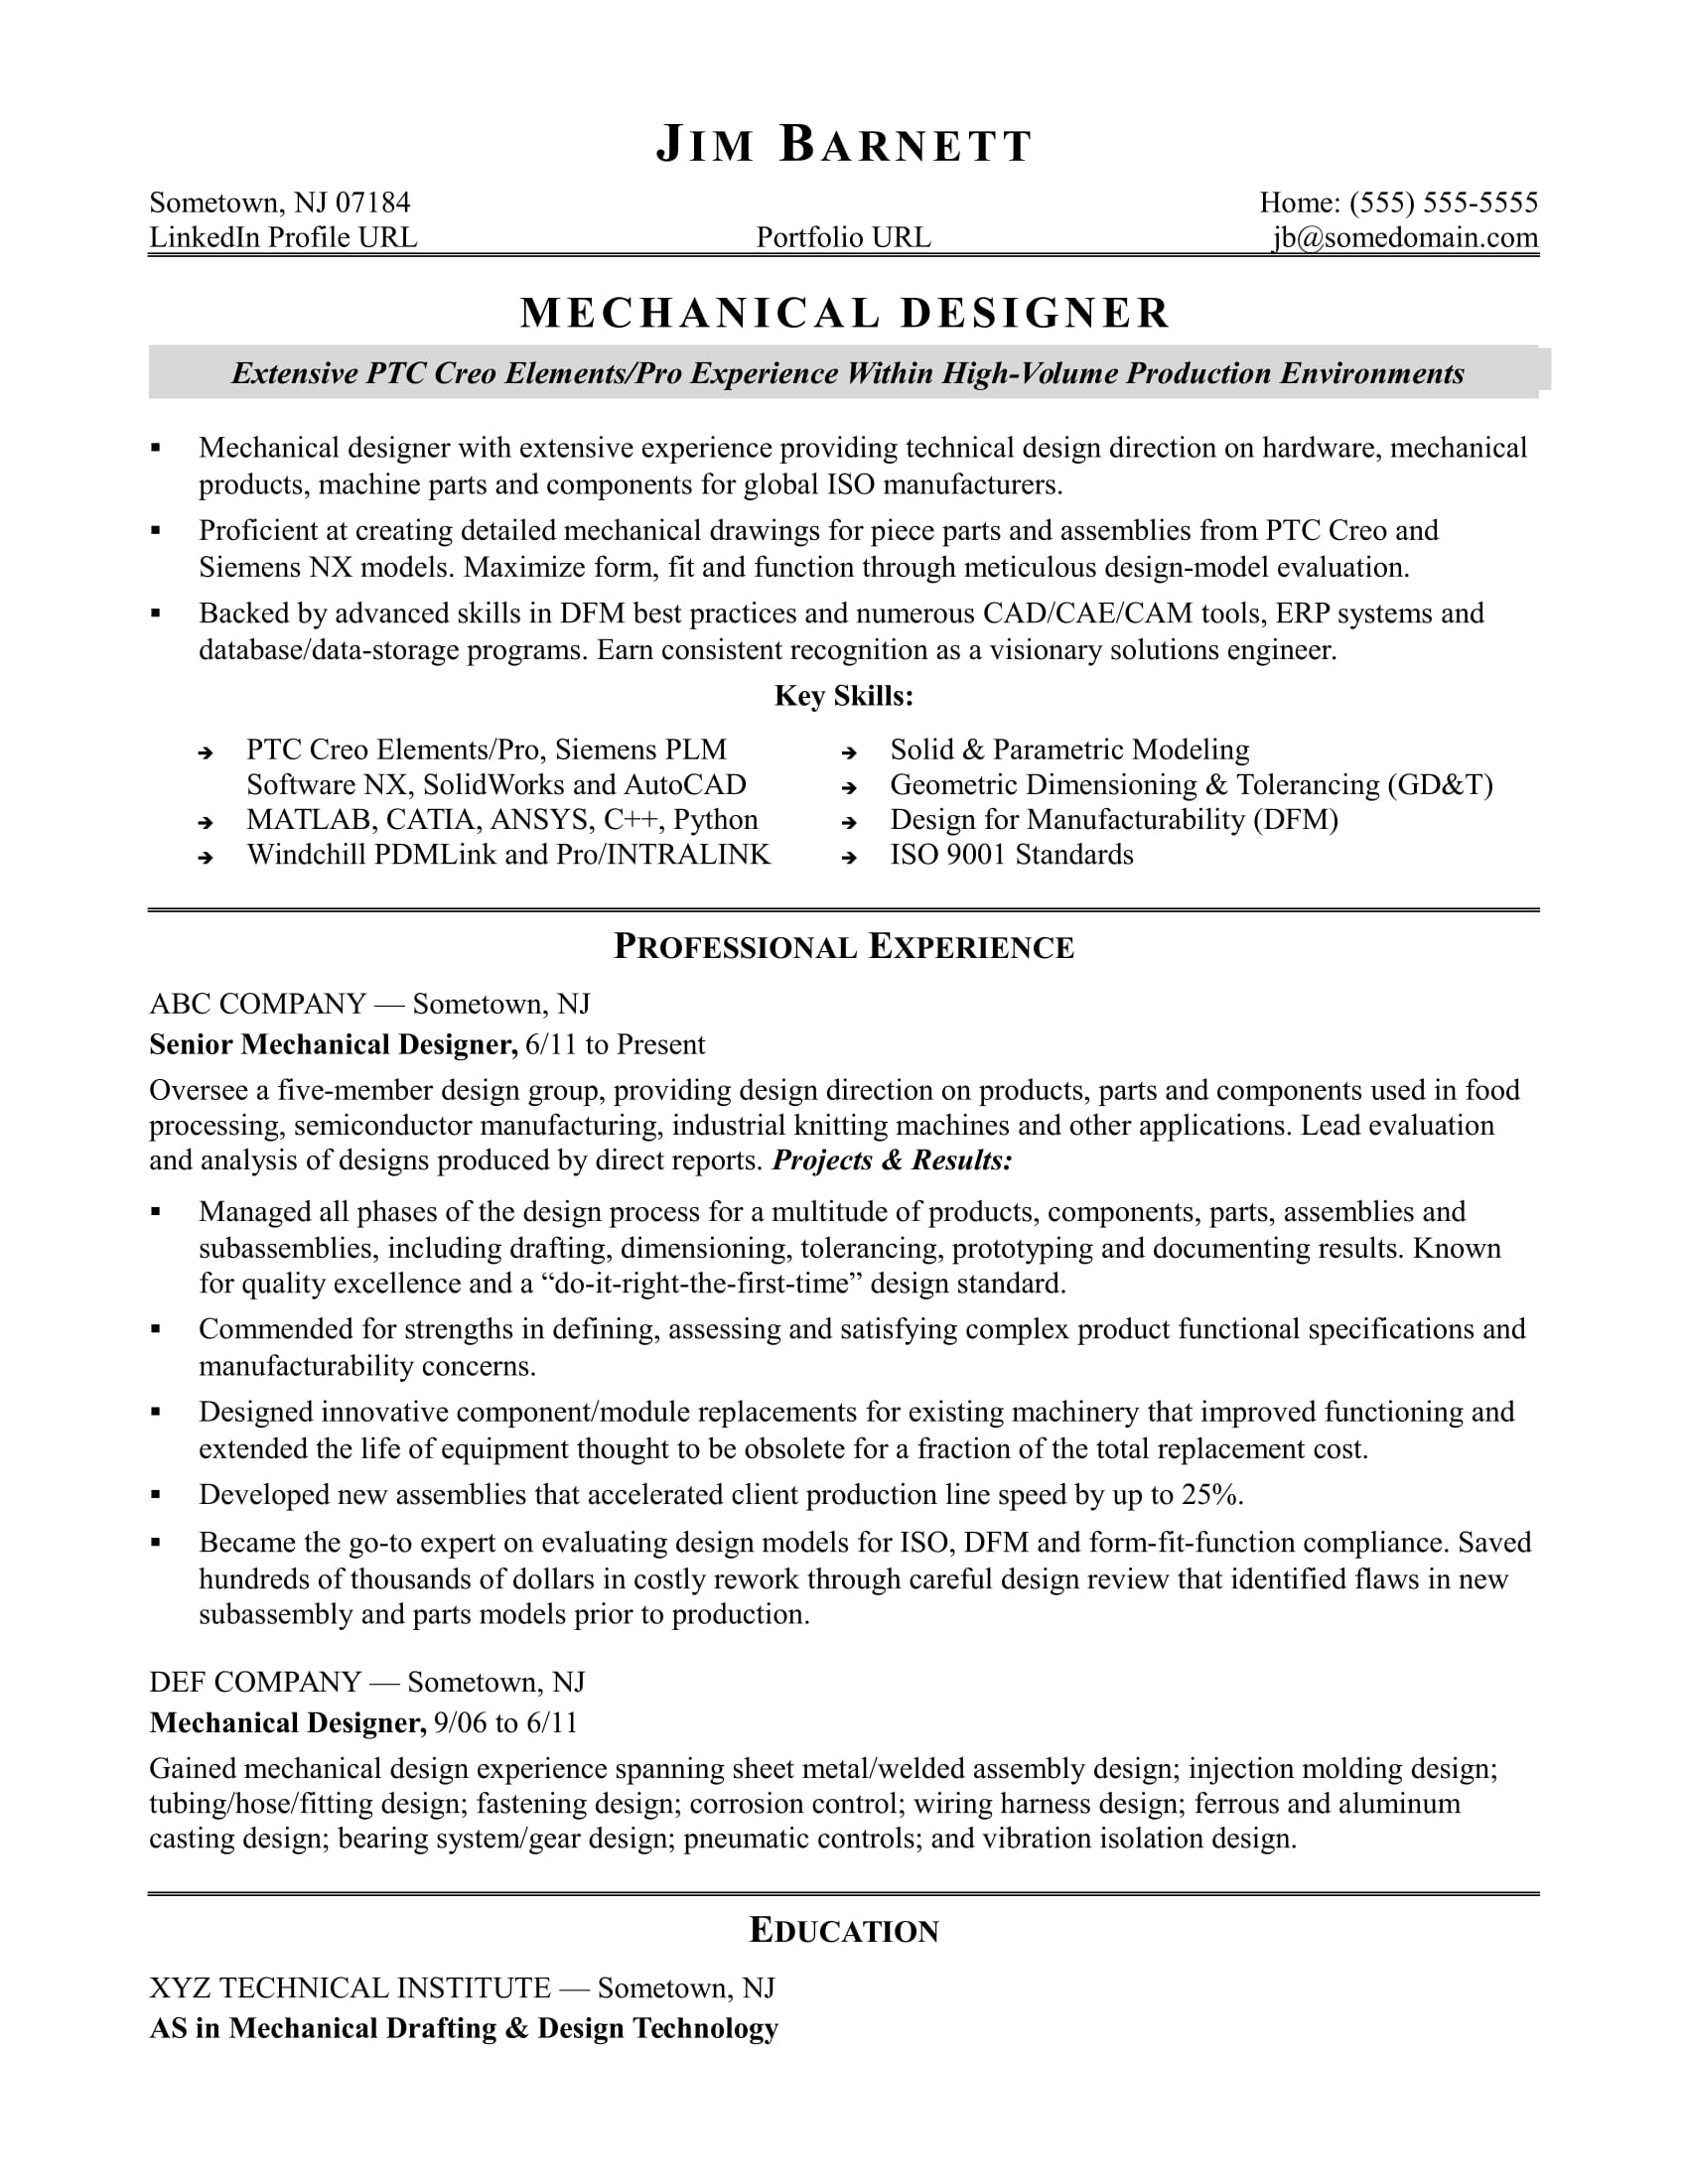 Sample Resume For An Experienced Mechanical Designer Monster